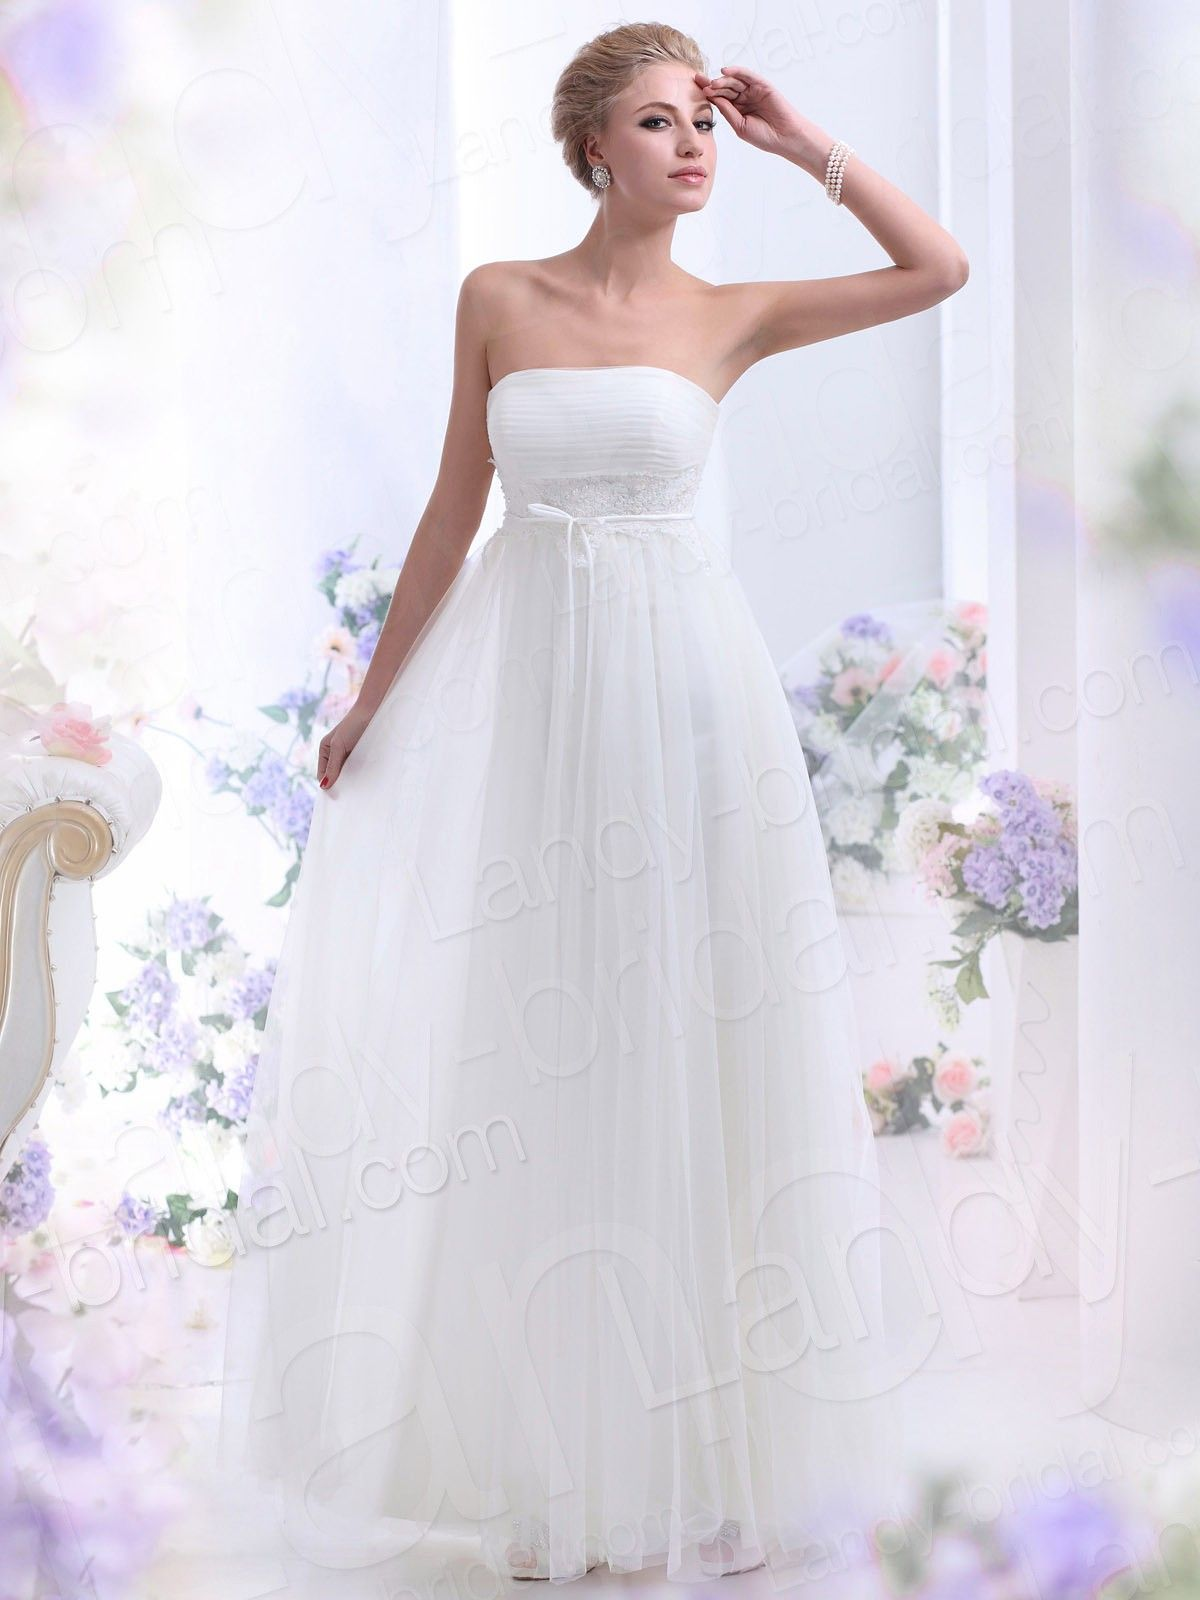 30+ Wedding dresses for large breasts info